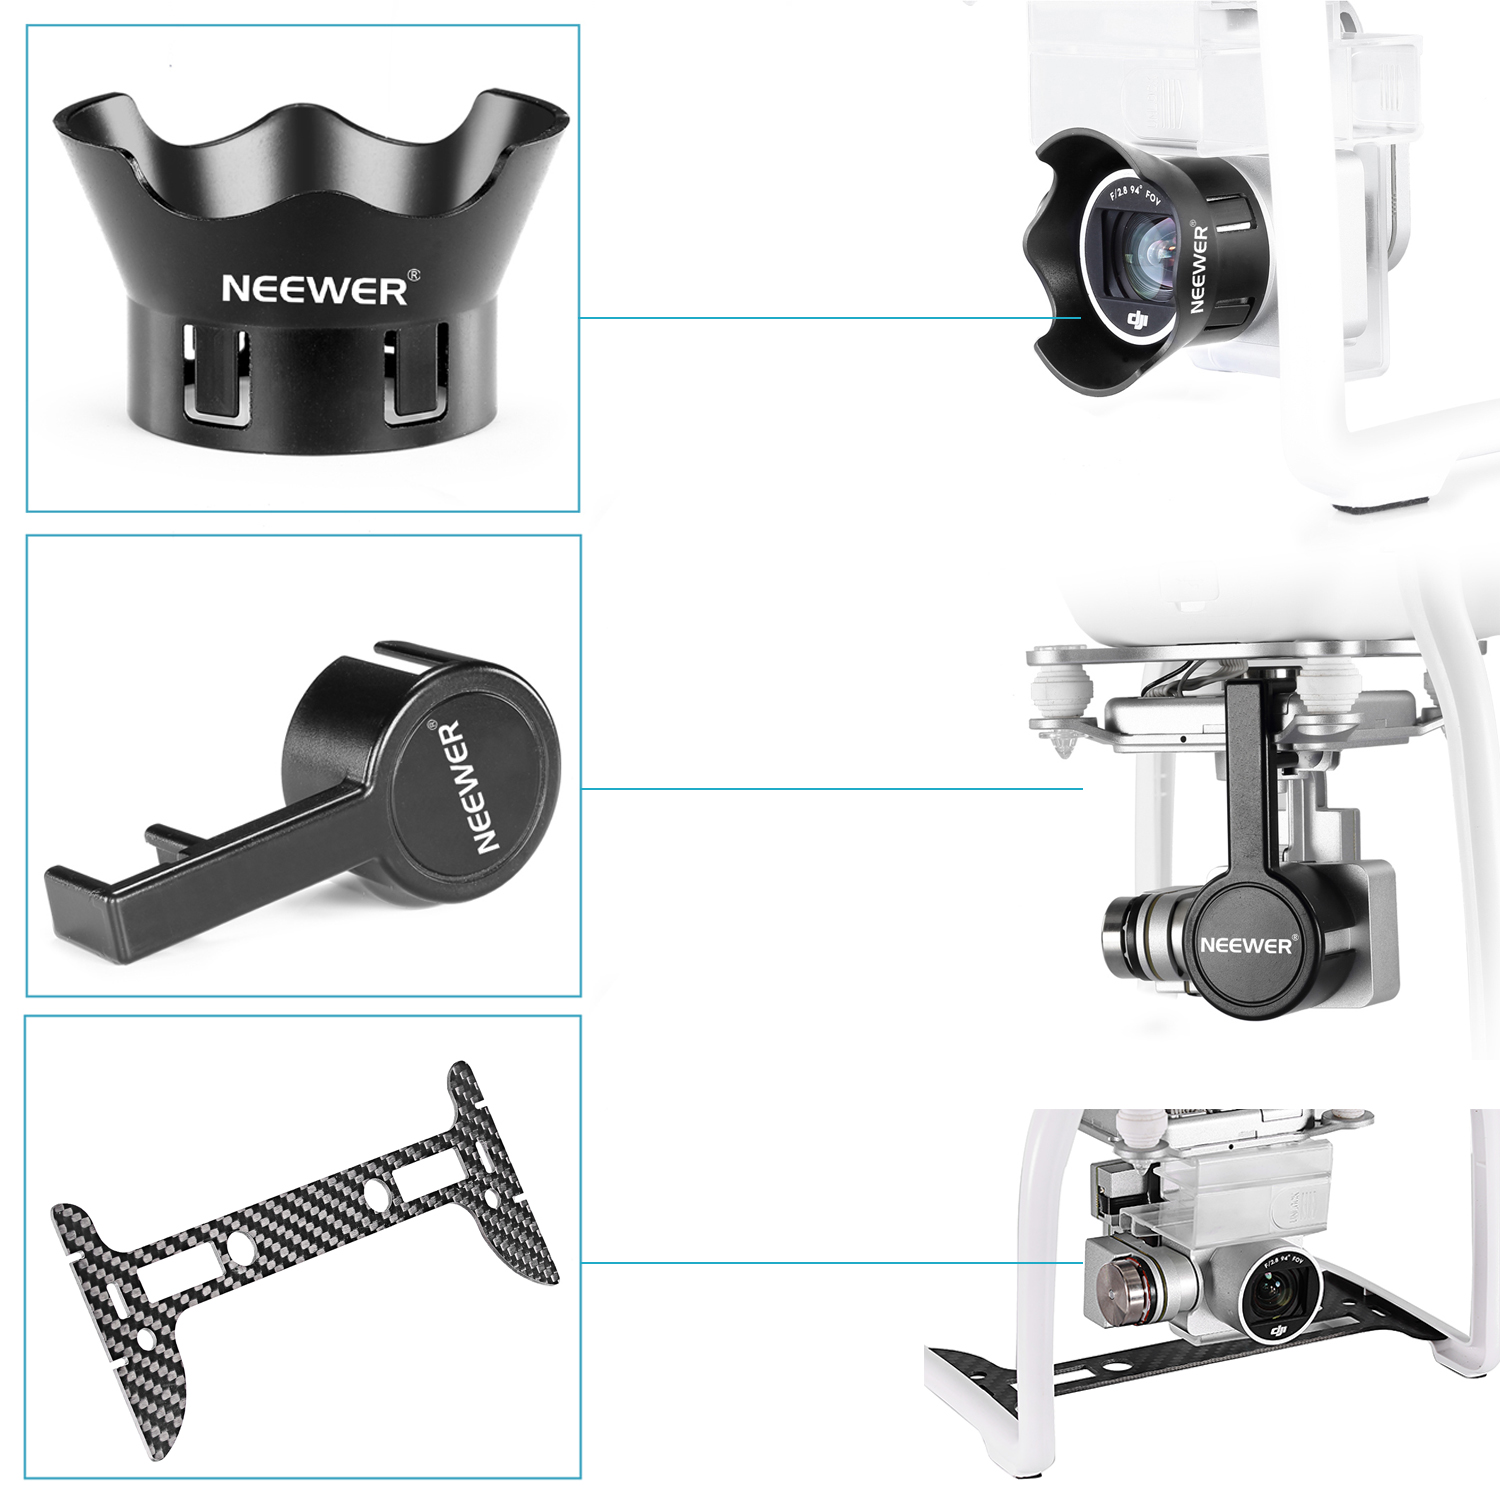 Details about Neewer Gimbal Guard + Camera Lens Cap for DJI Phantom 3  Professional Advanced